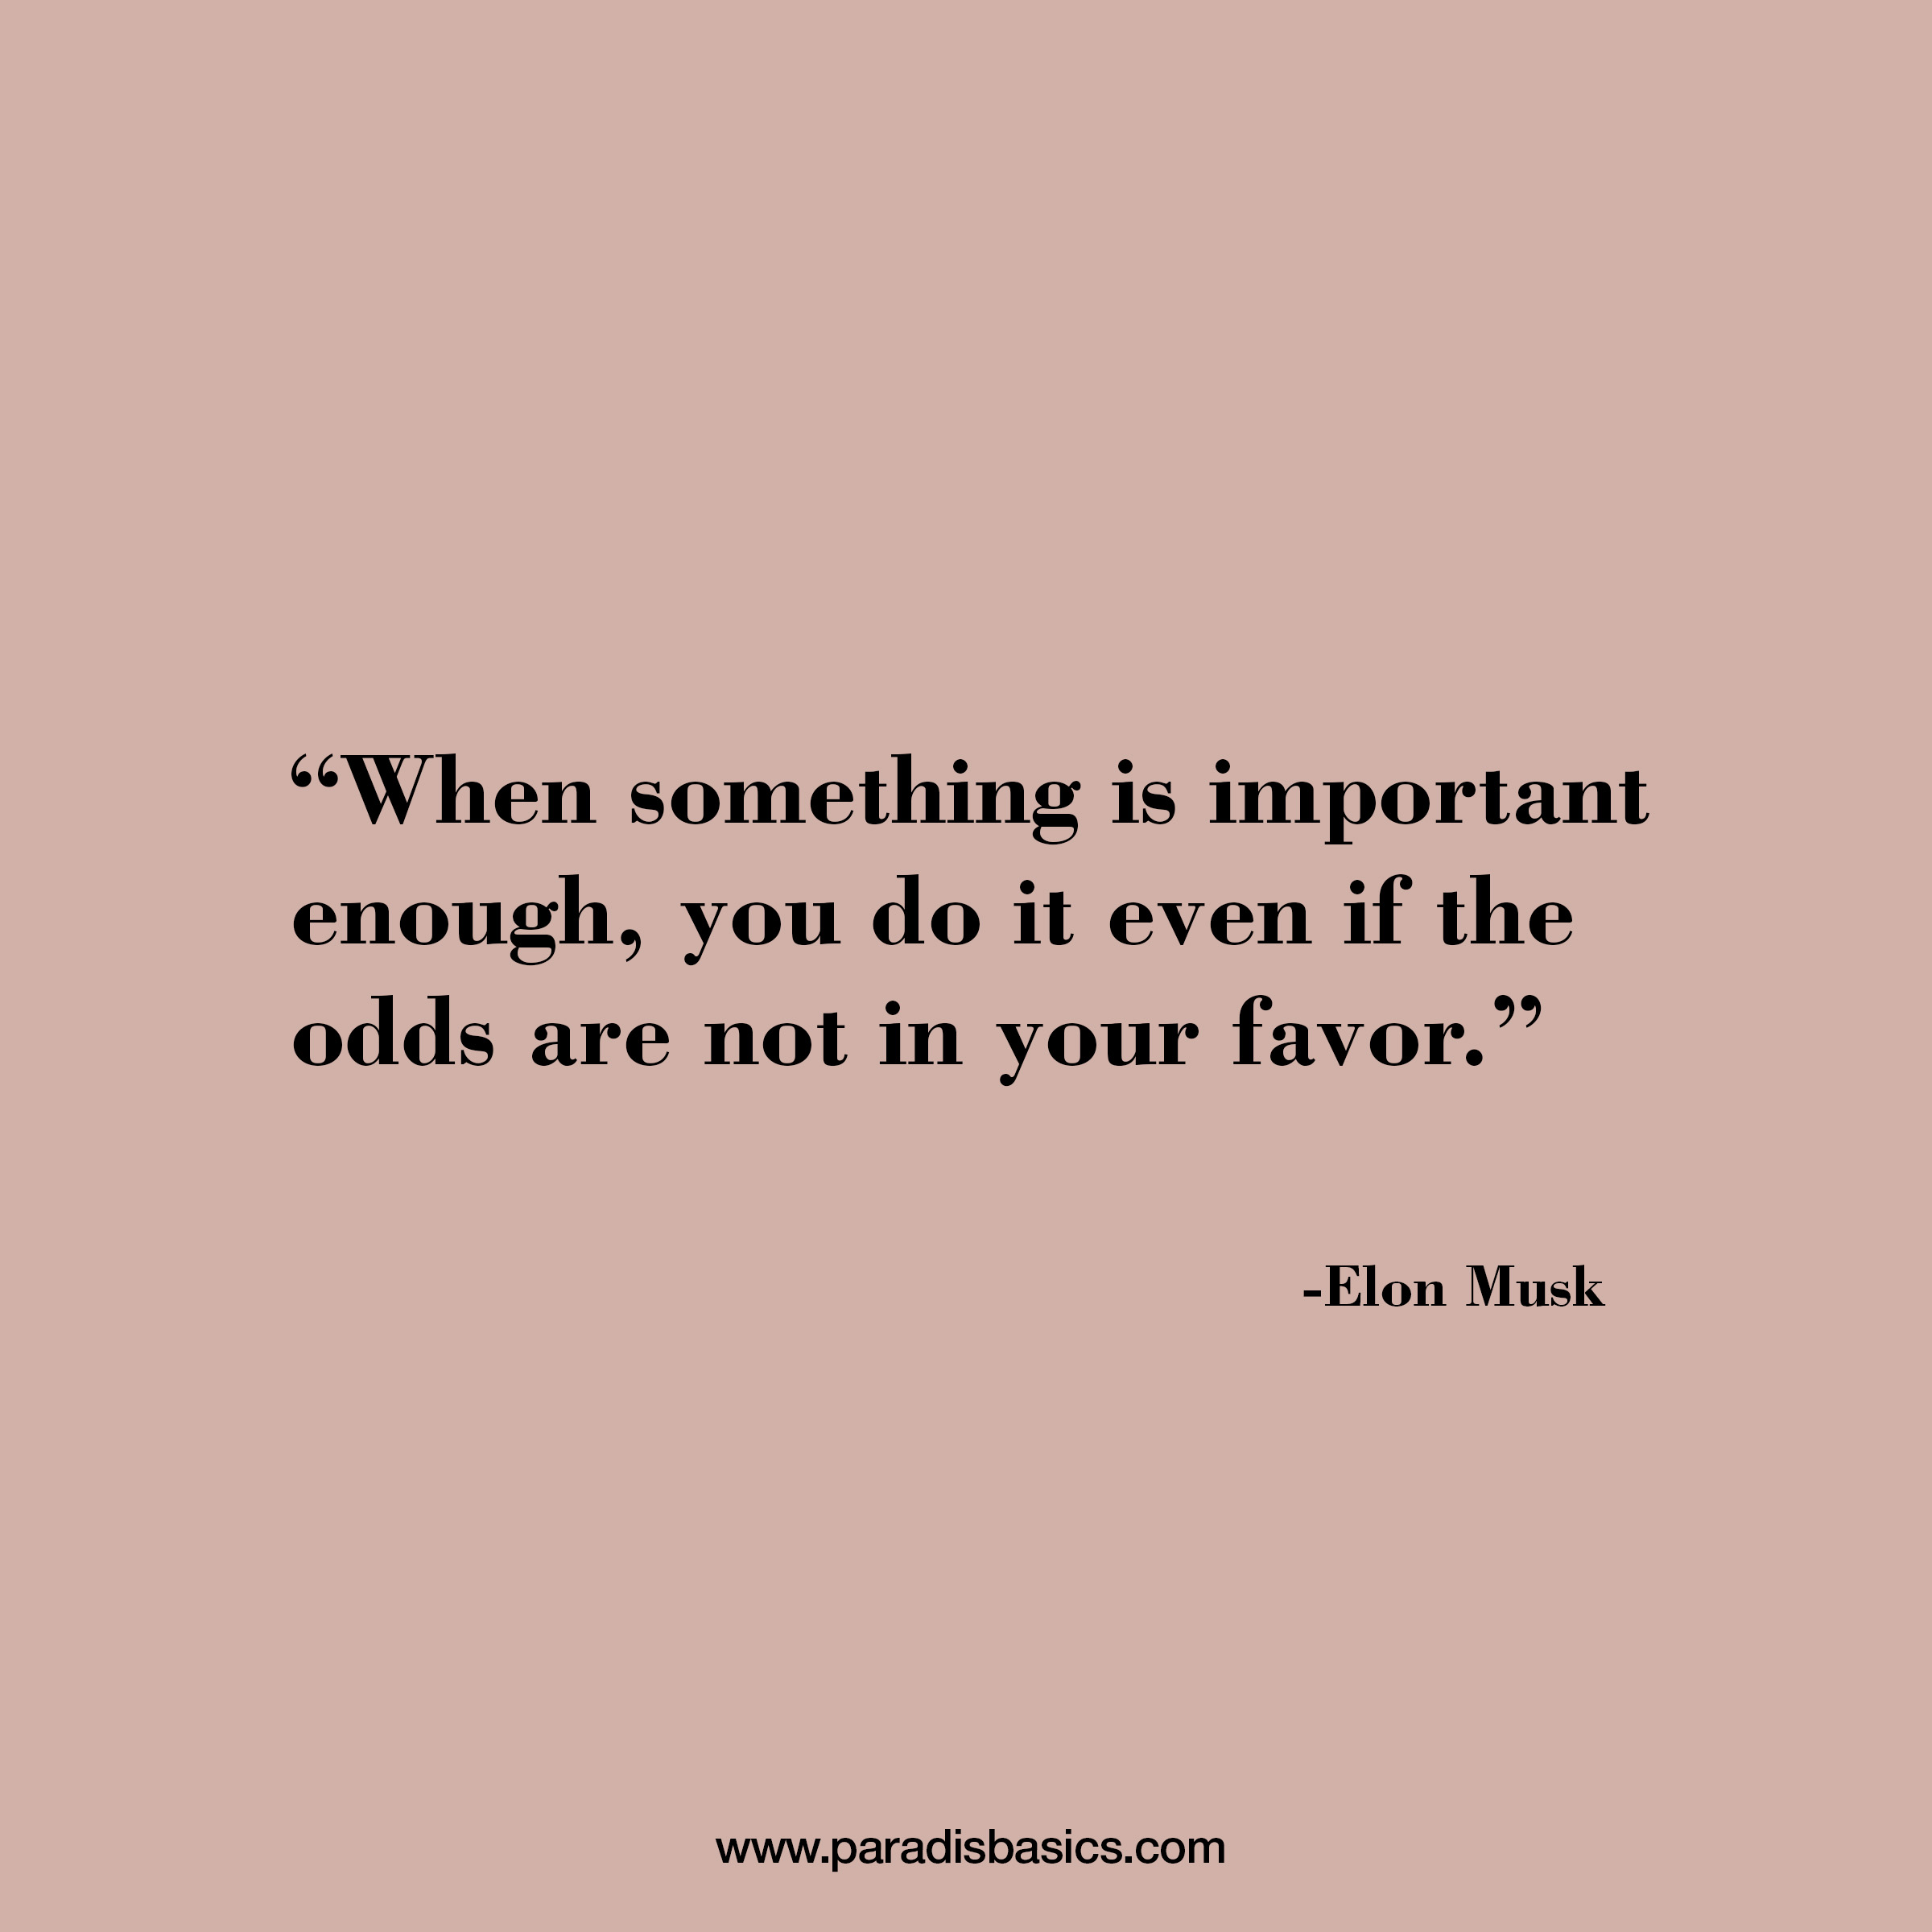 """""""When something is important enough, you do it even if the odds are not in your favor."""" Elon Musk"""